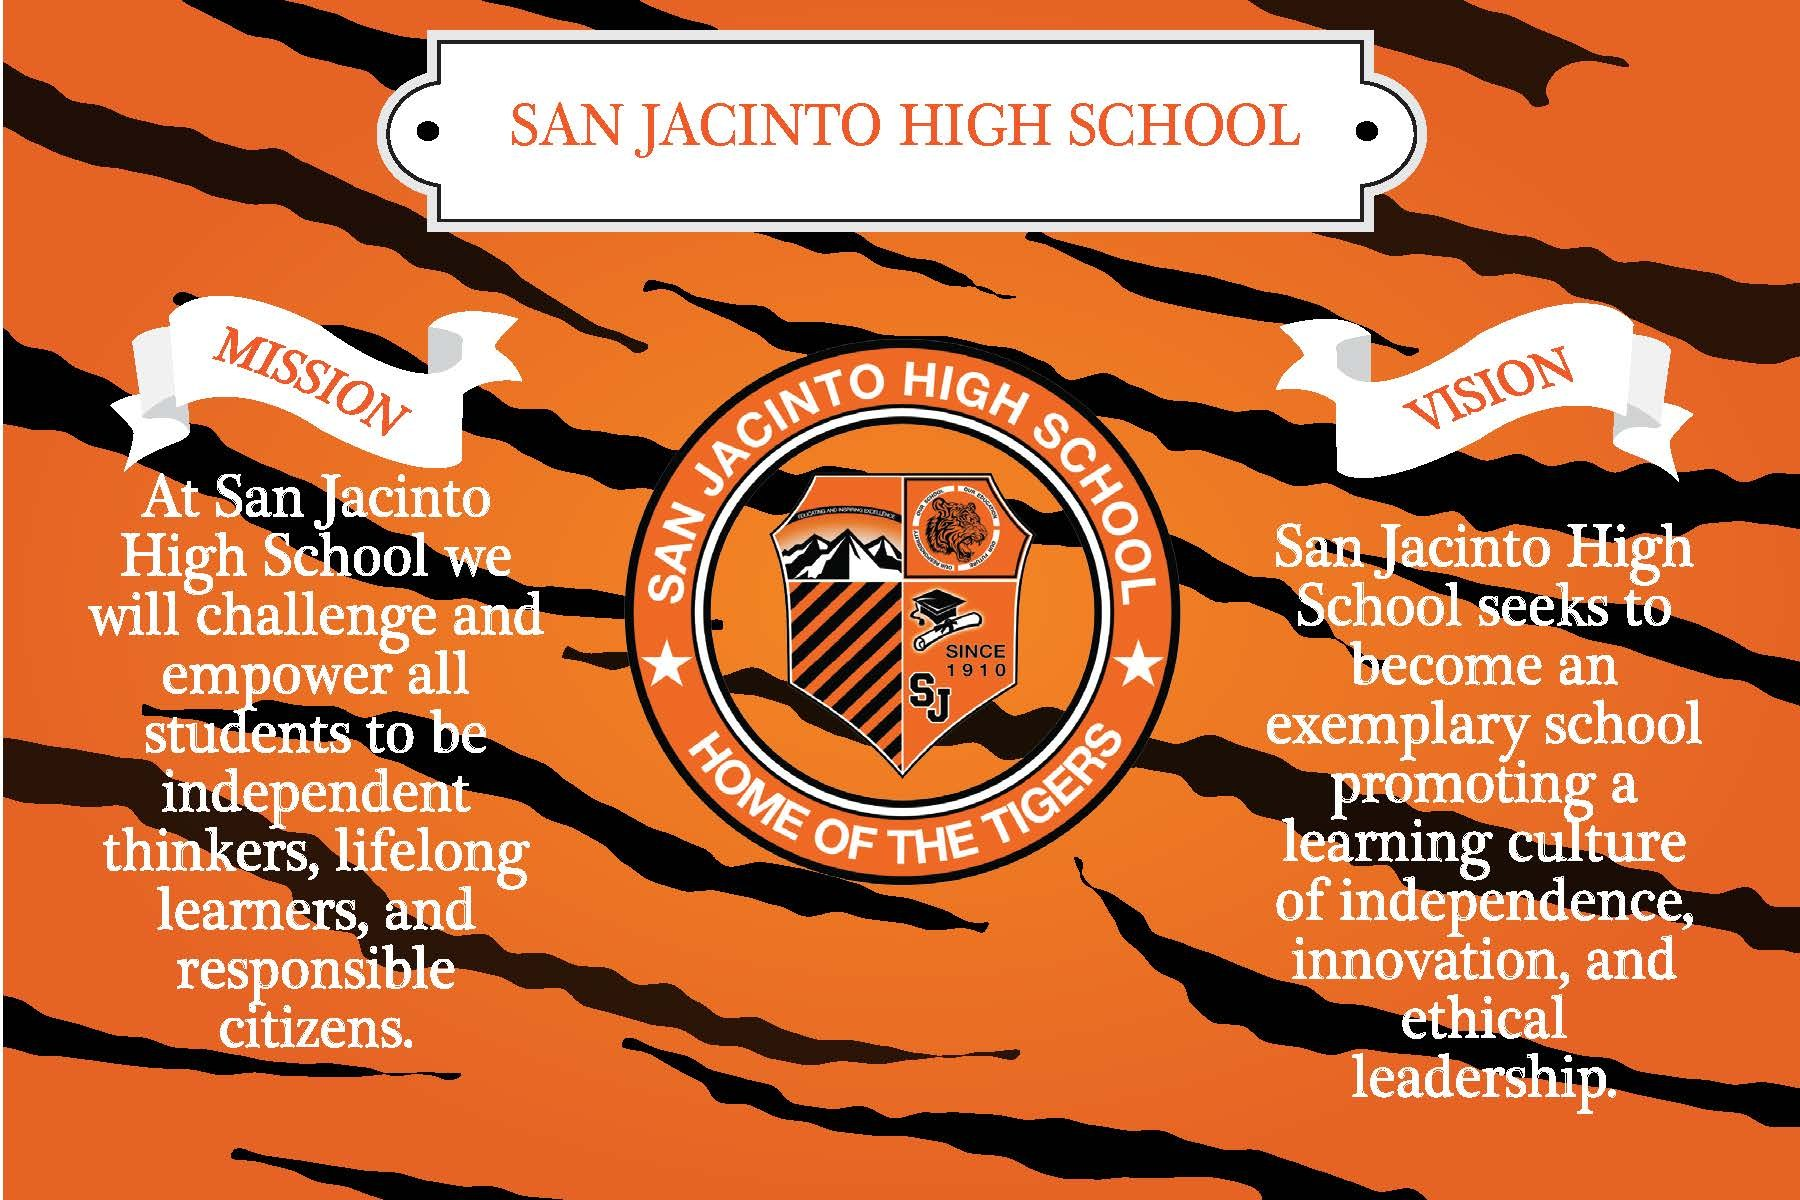 San Jacinto High School Mission and Vision statements